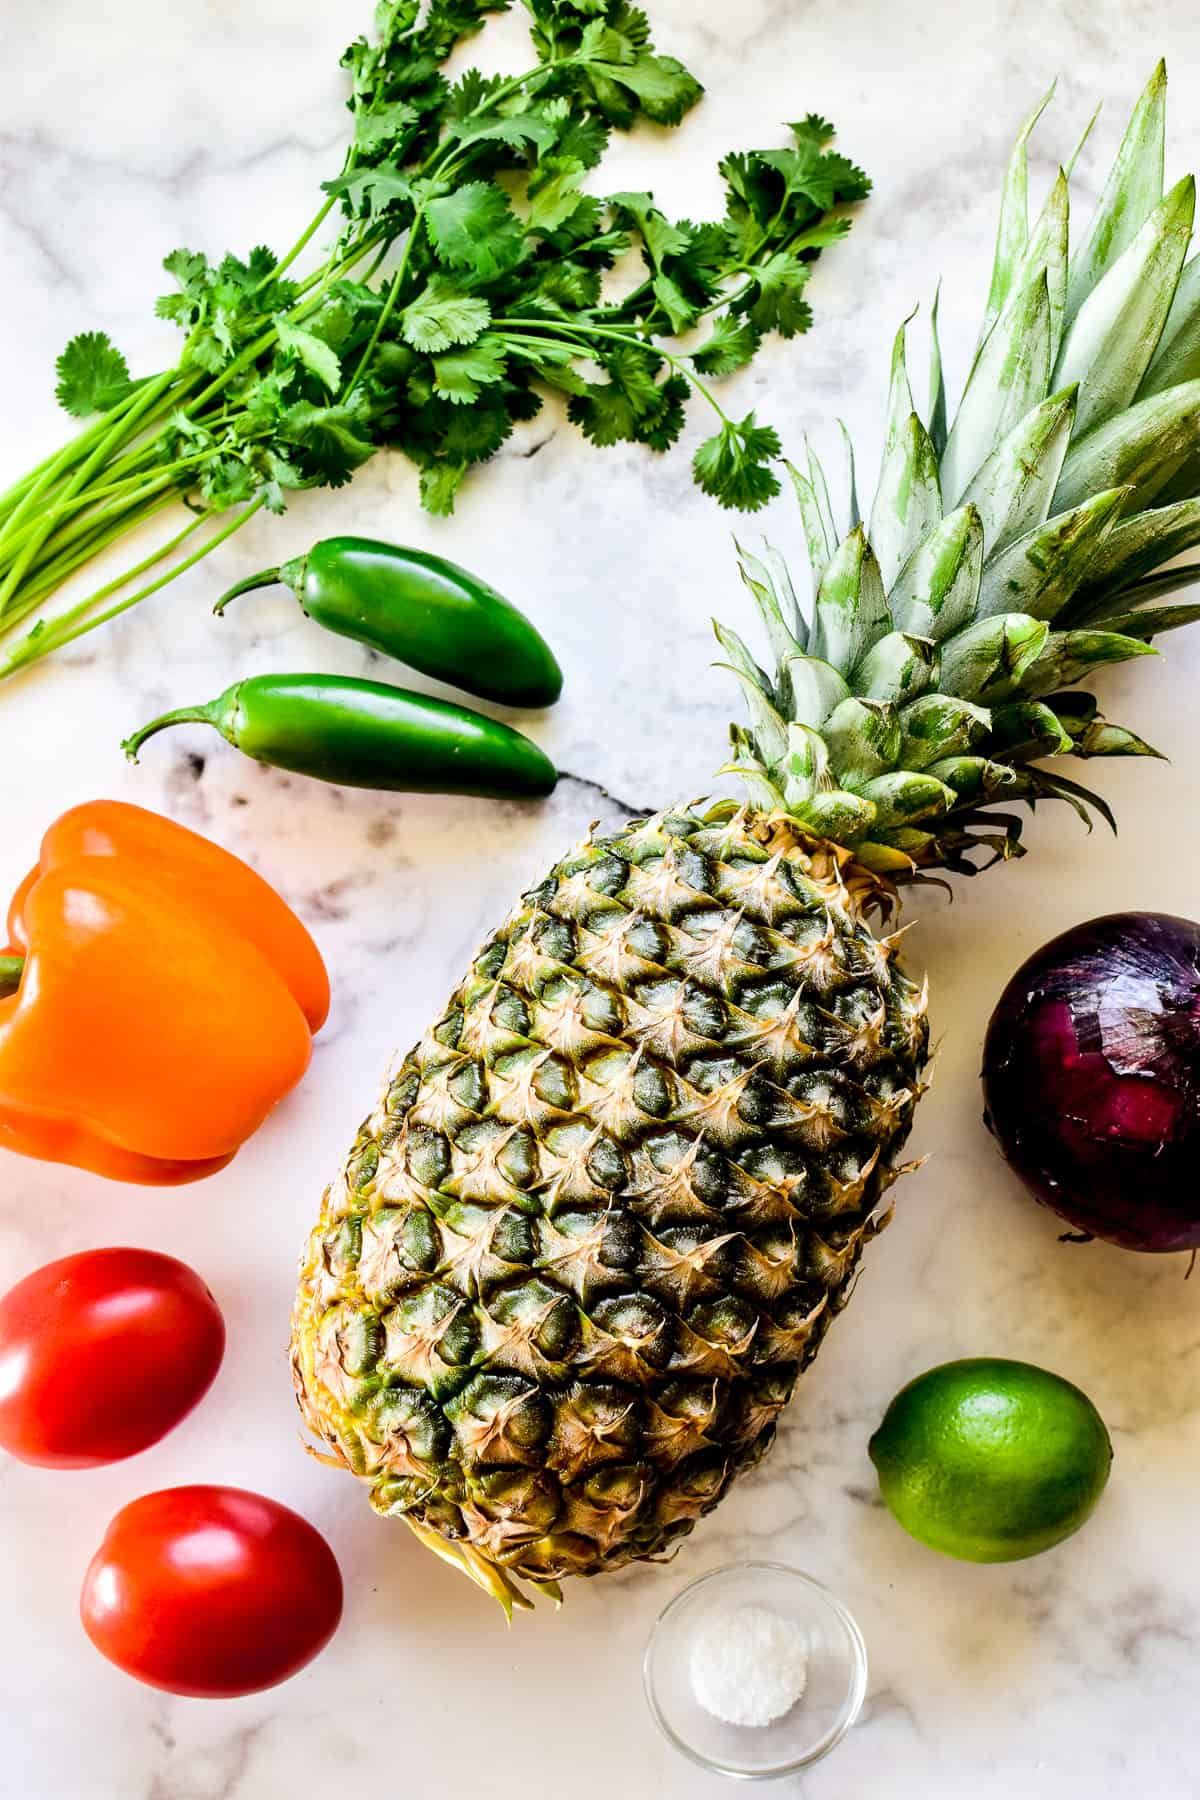 Pineapple Salsa ingredients on a marble background